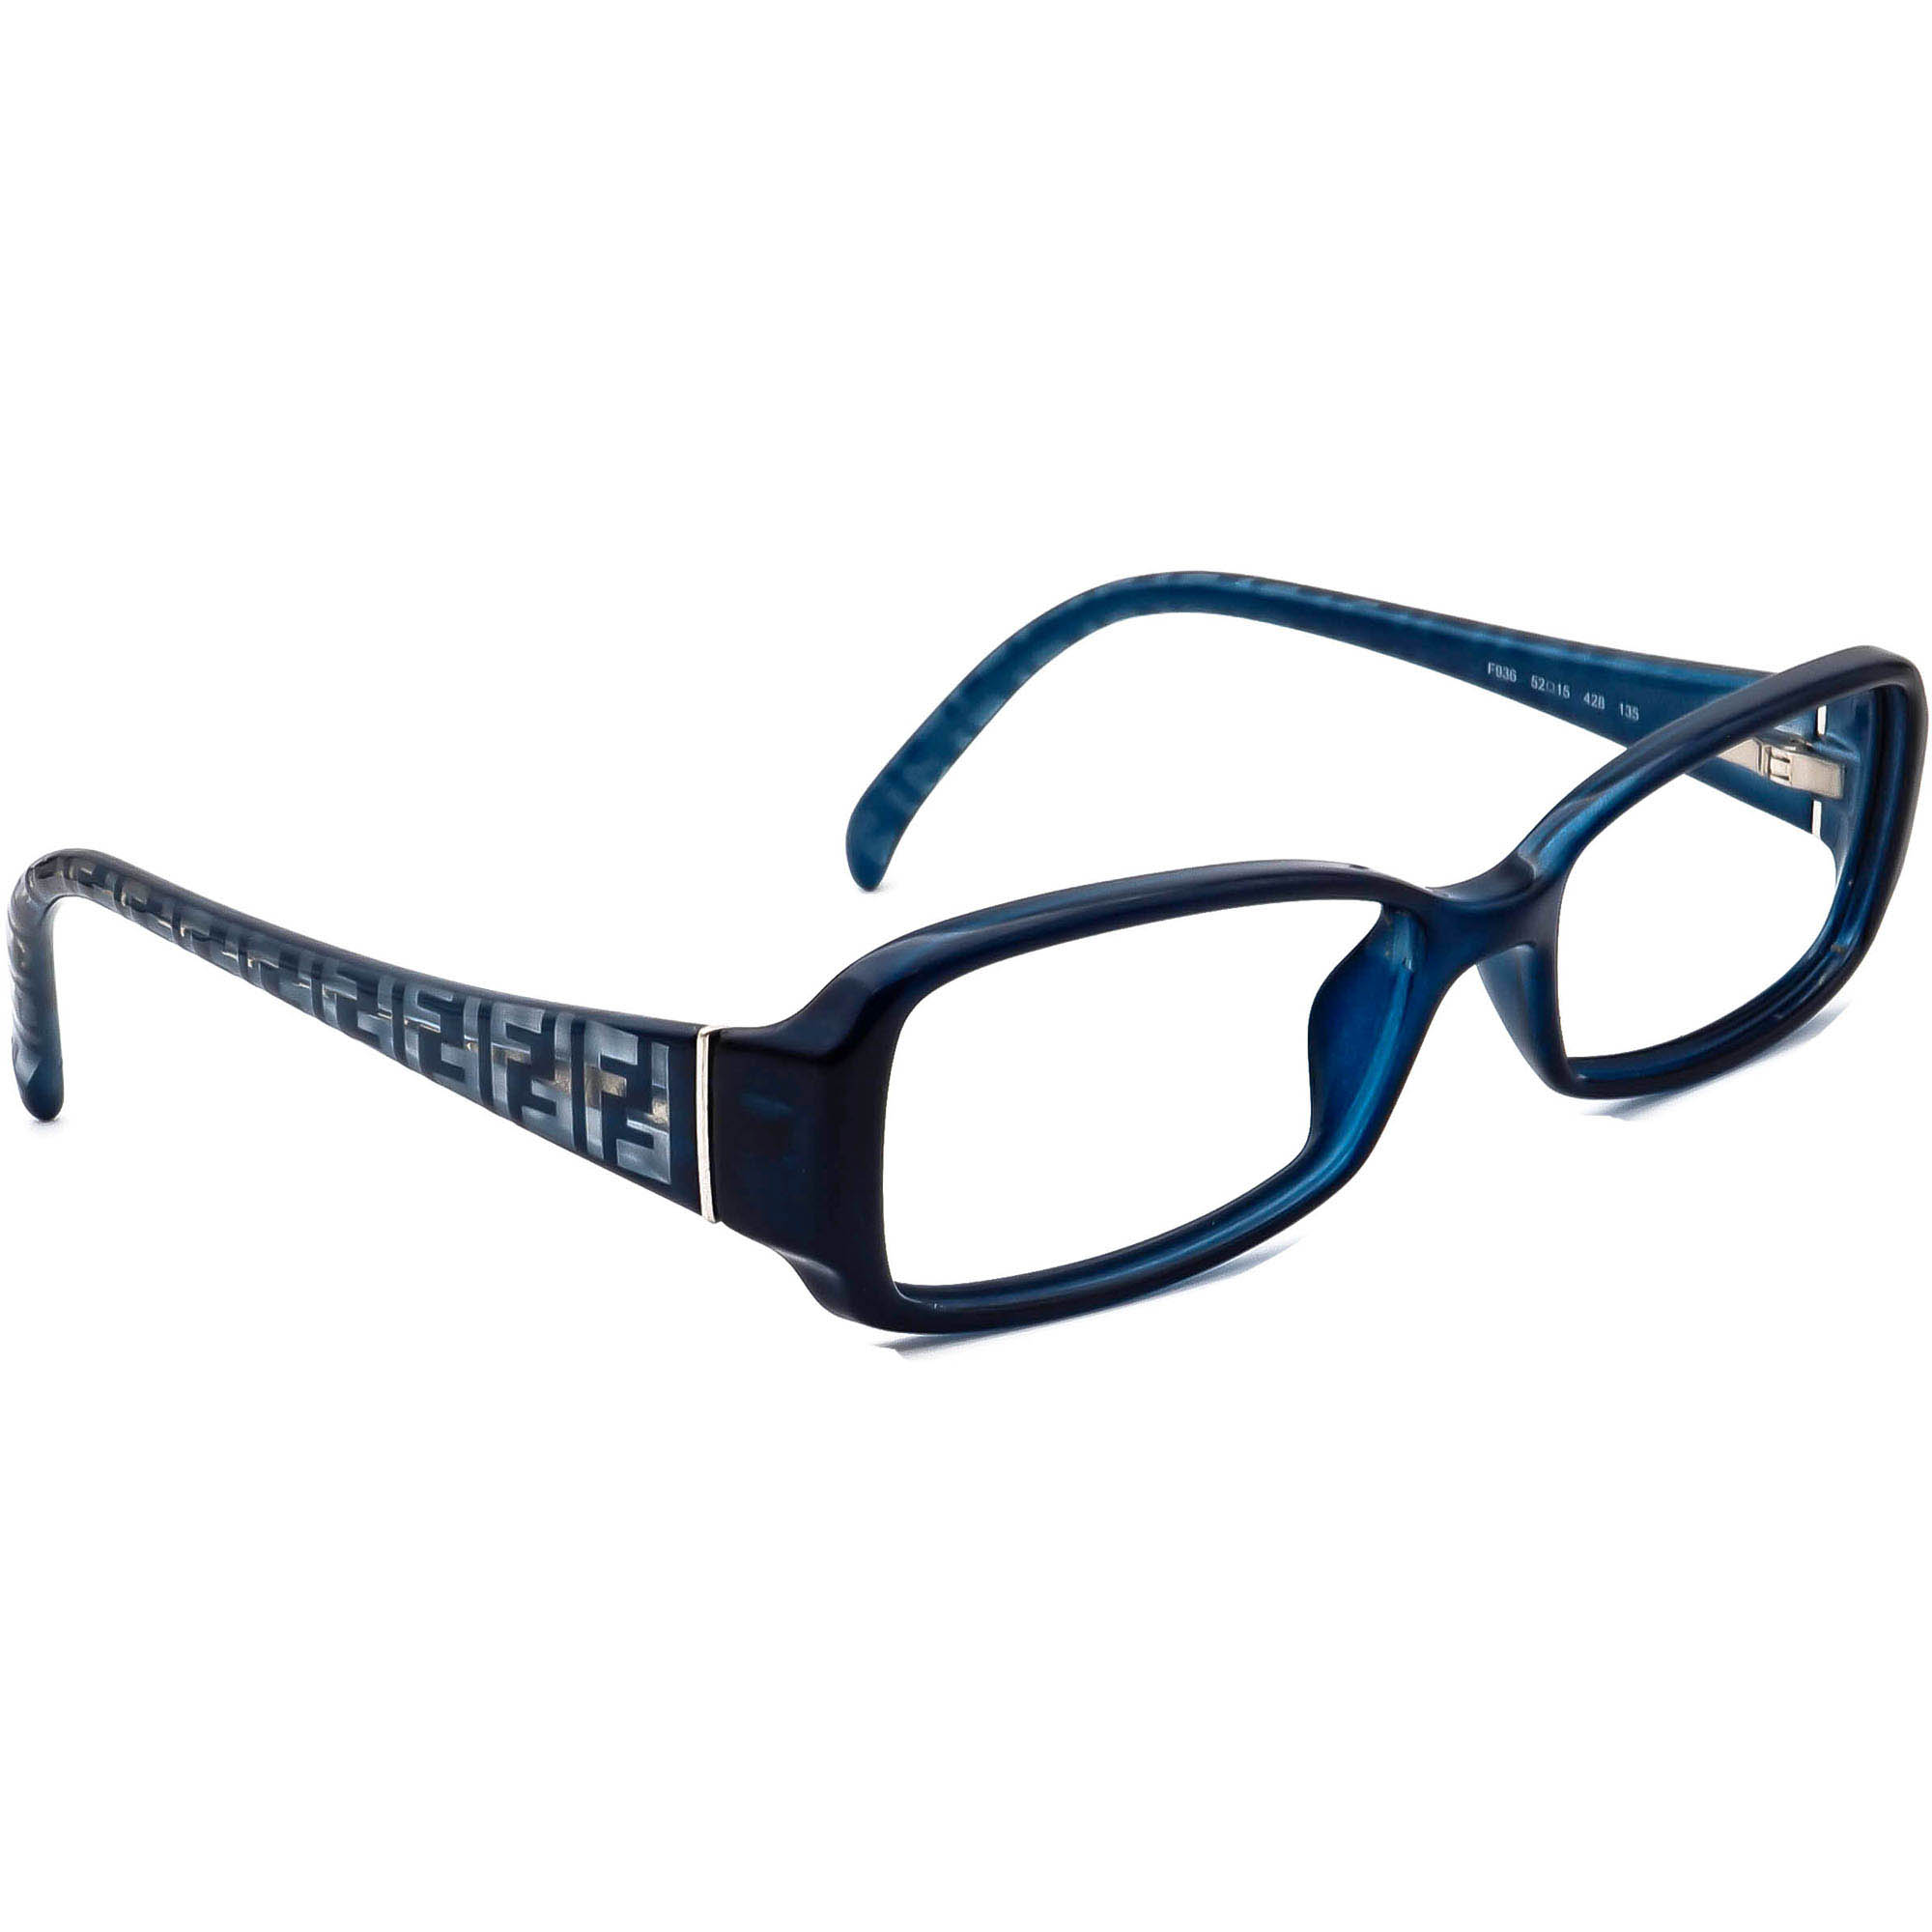 Fendi F936 428 Eyeglasses